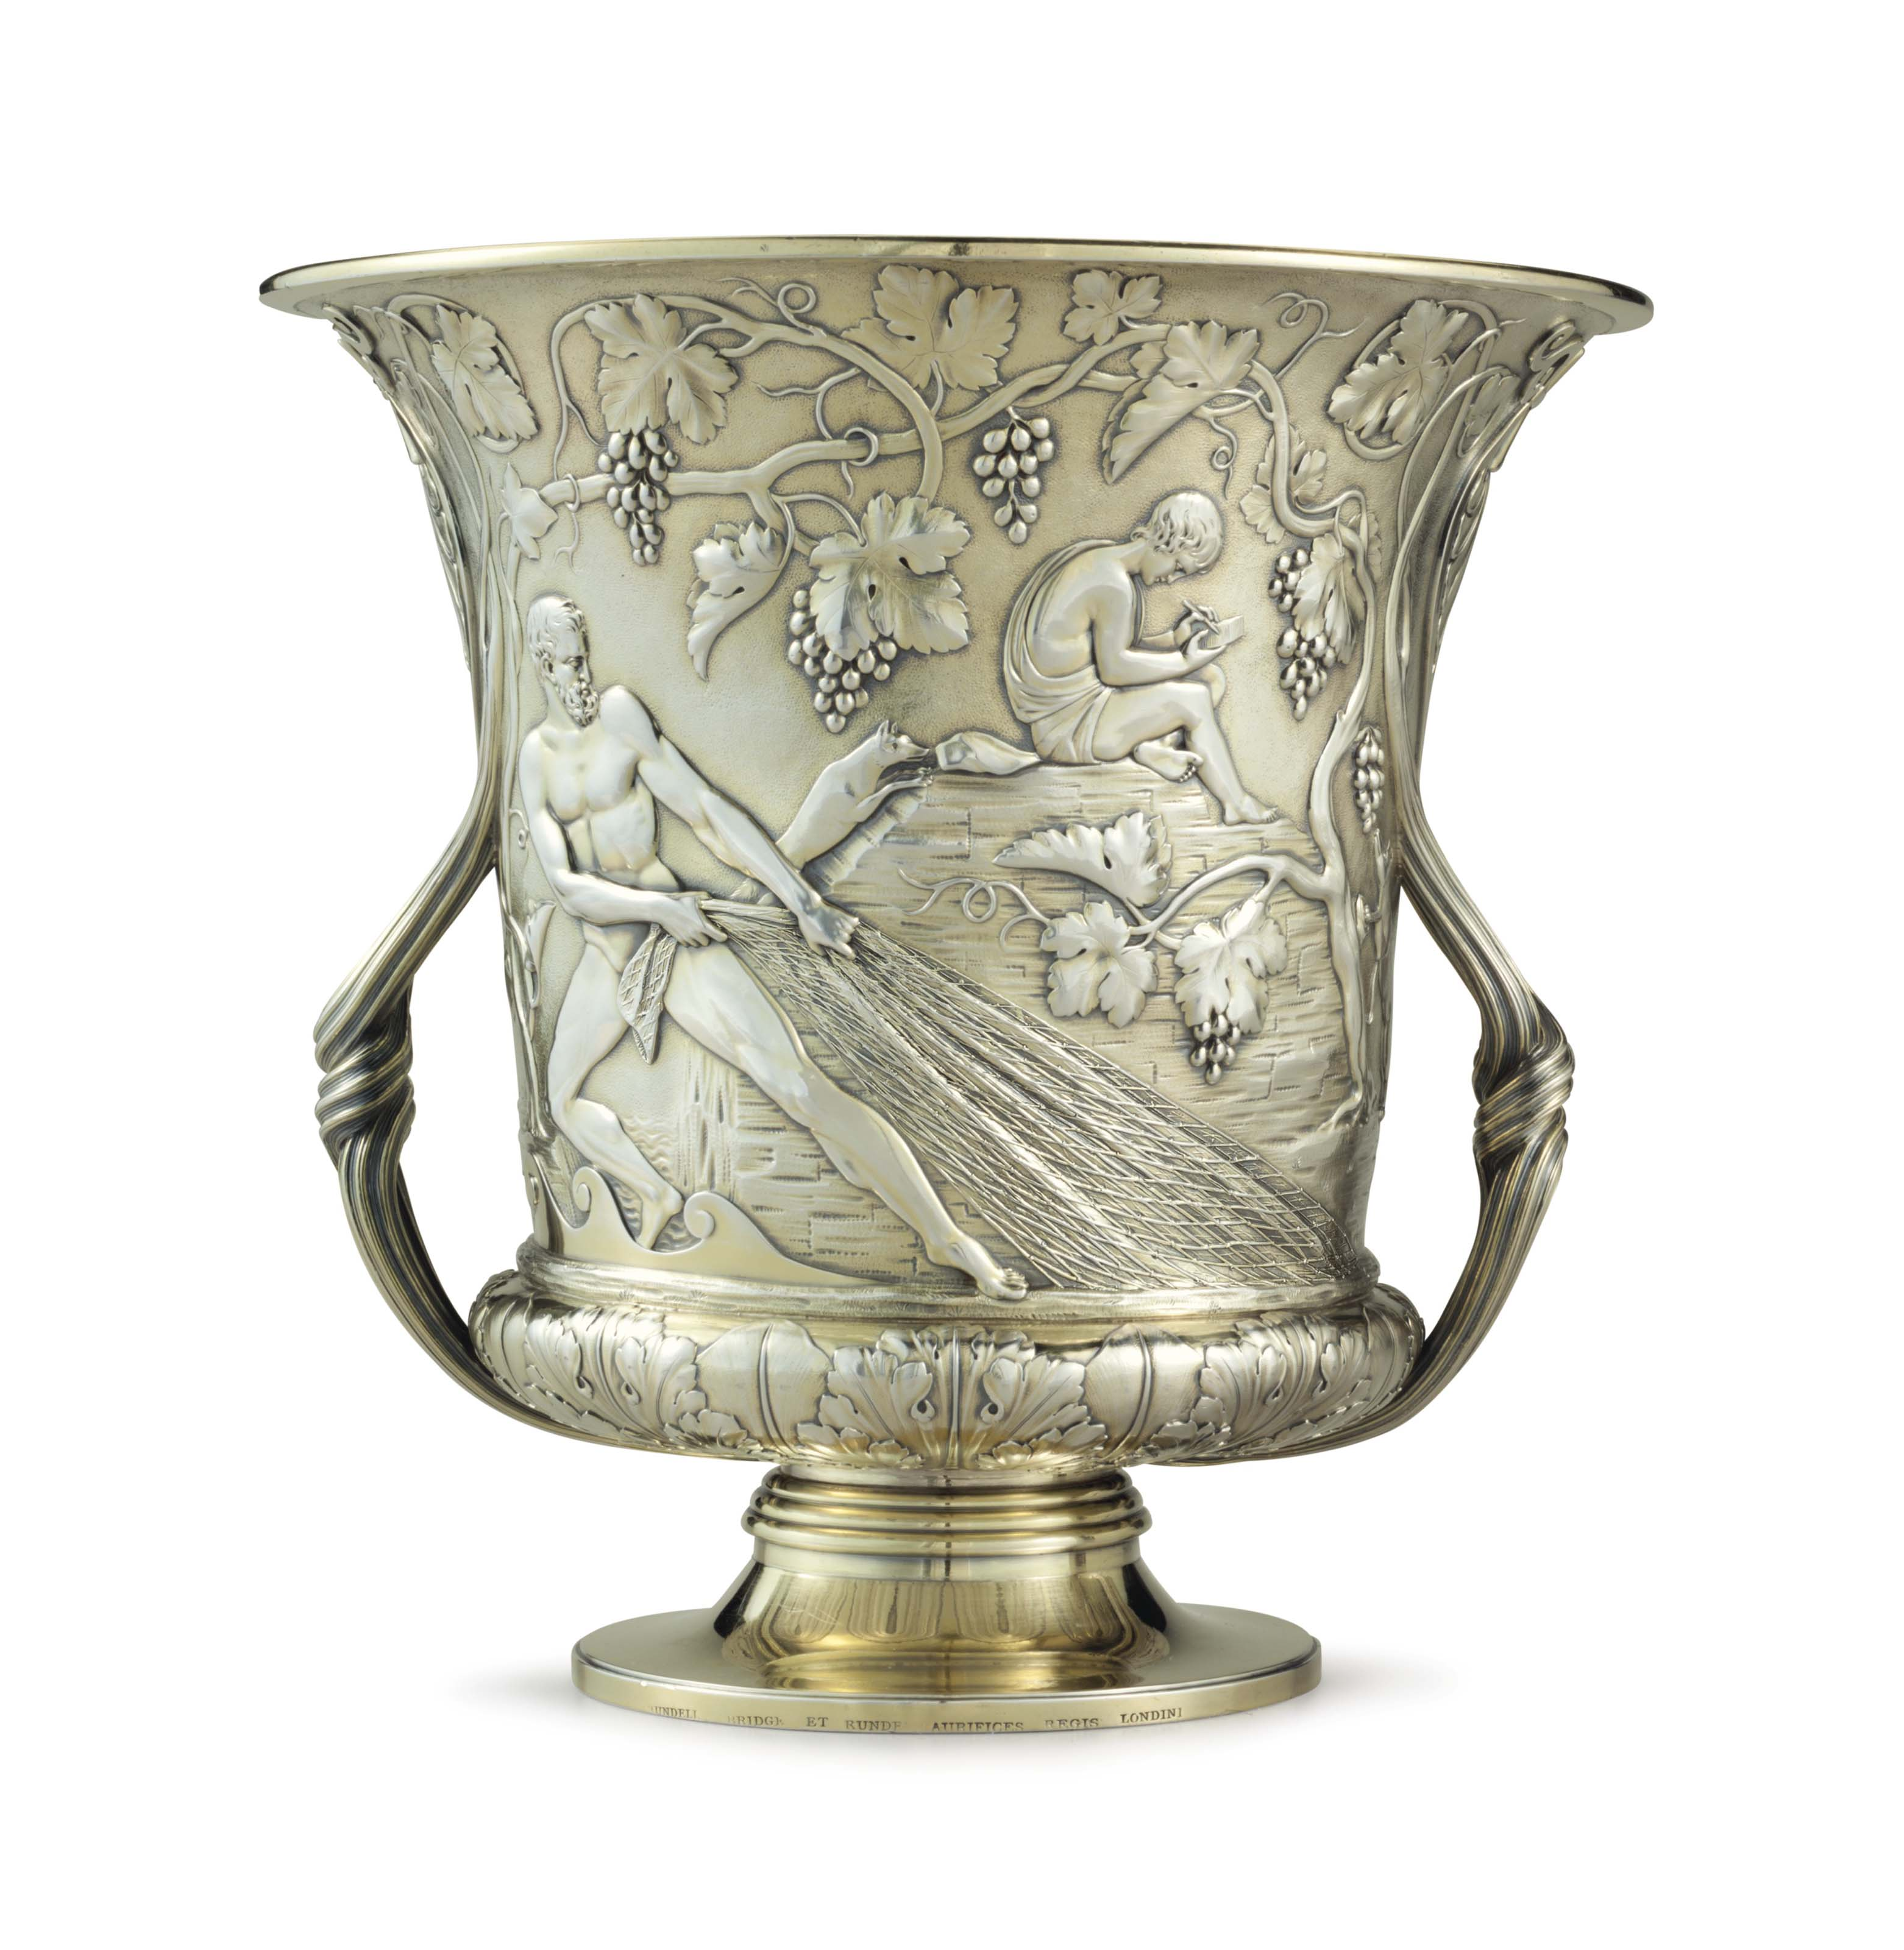 A GEORGE IV SILVER-GILT WINE COOLER